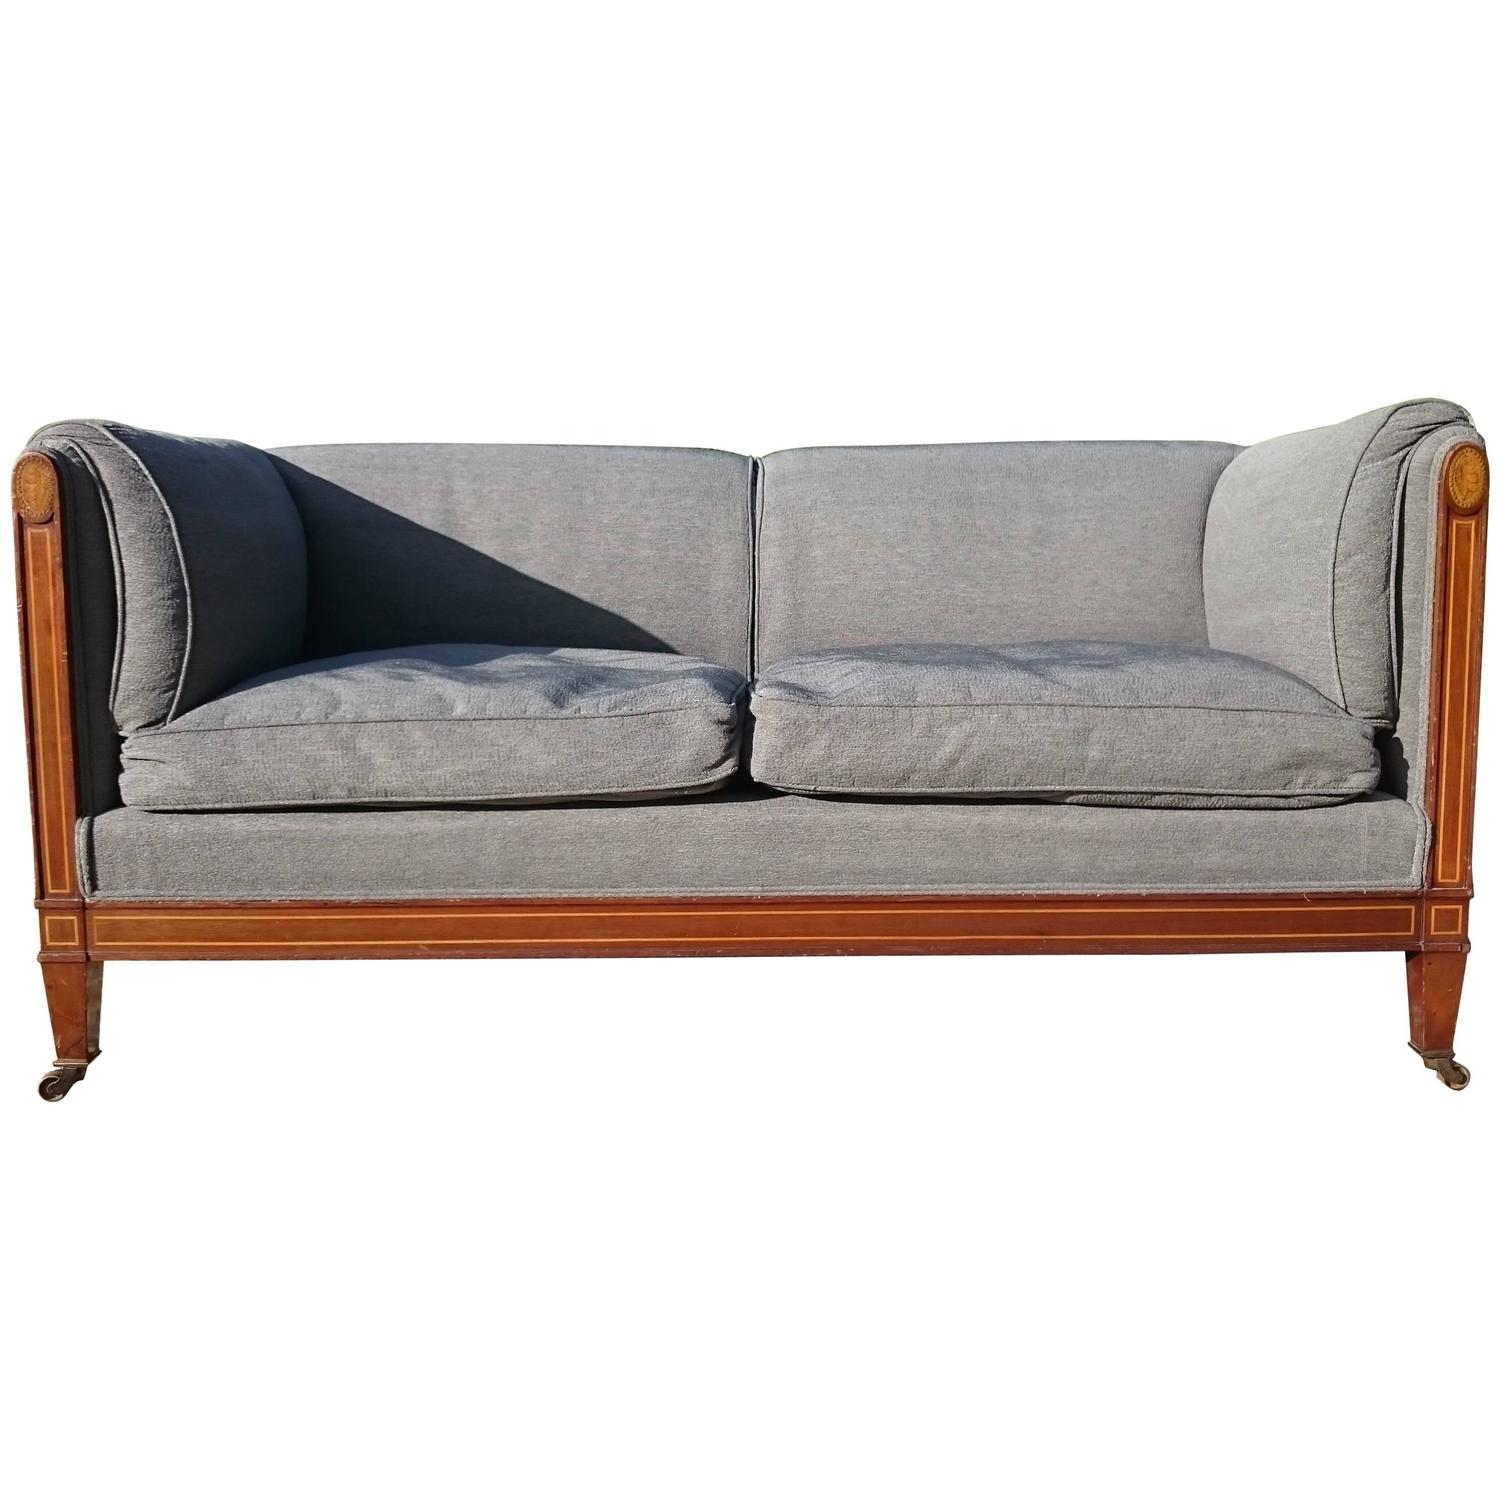 Si Ge De Duvet Sofa By Howard And Sons Of London For Sale At 1stdibs